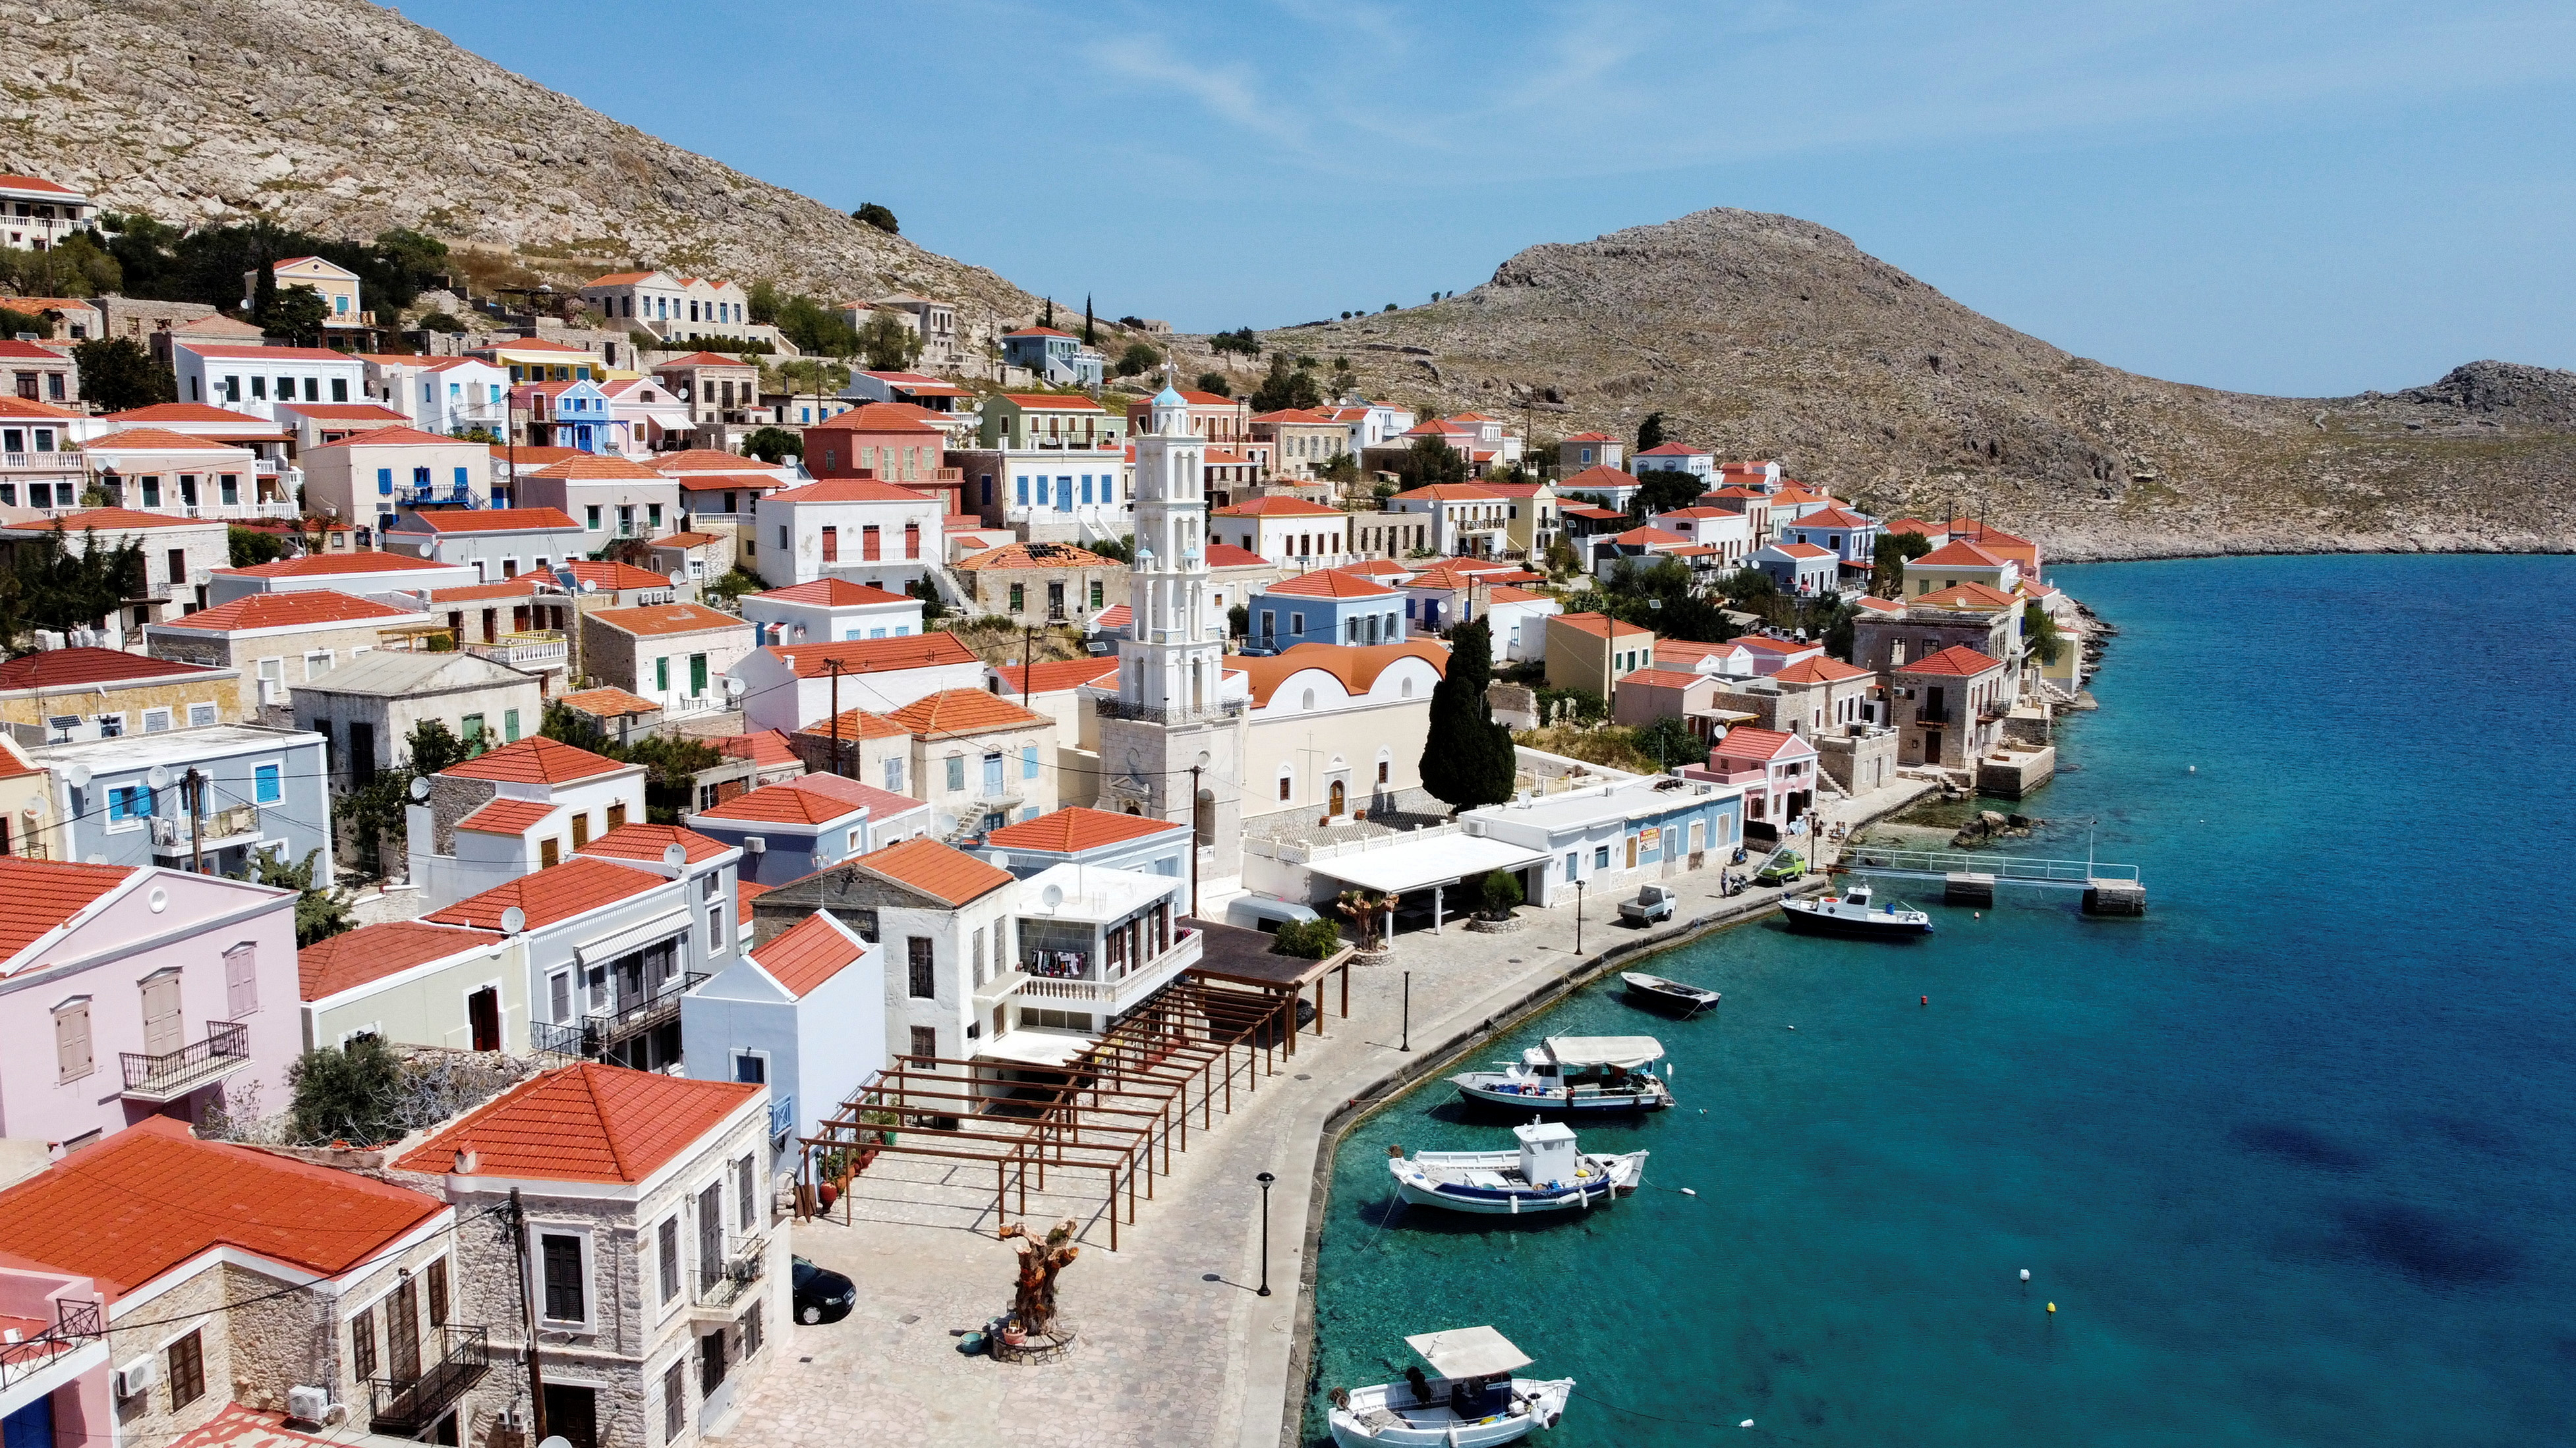 View of the town of Halki, amid the coronavirus disease (COVID-19) pandemic, on the island of Halki, Greece, April 13, 2021. Picture taken with a drone. REUTERS/Vassilis Triandafyllou/File Photo